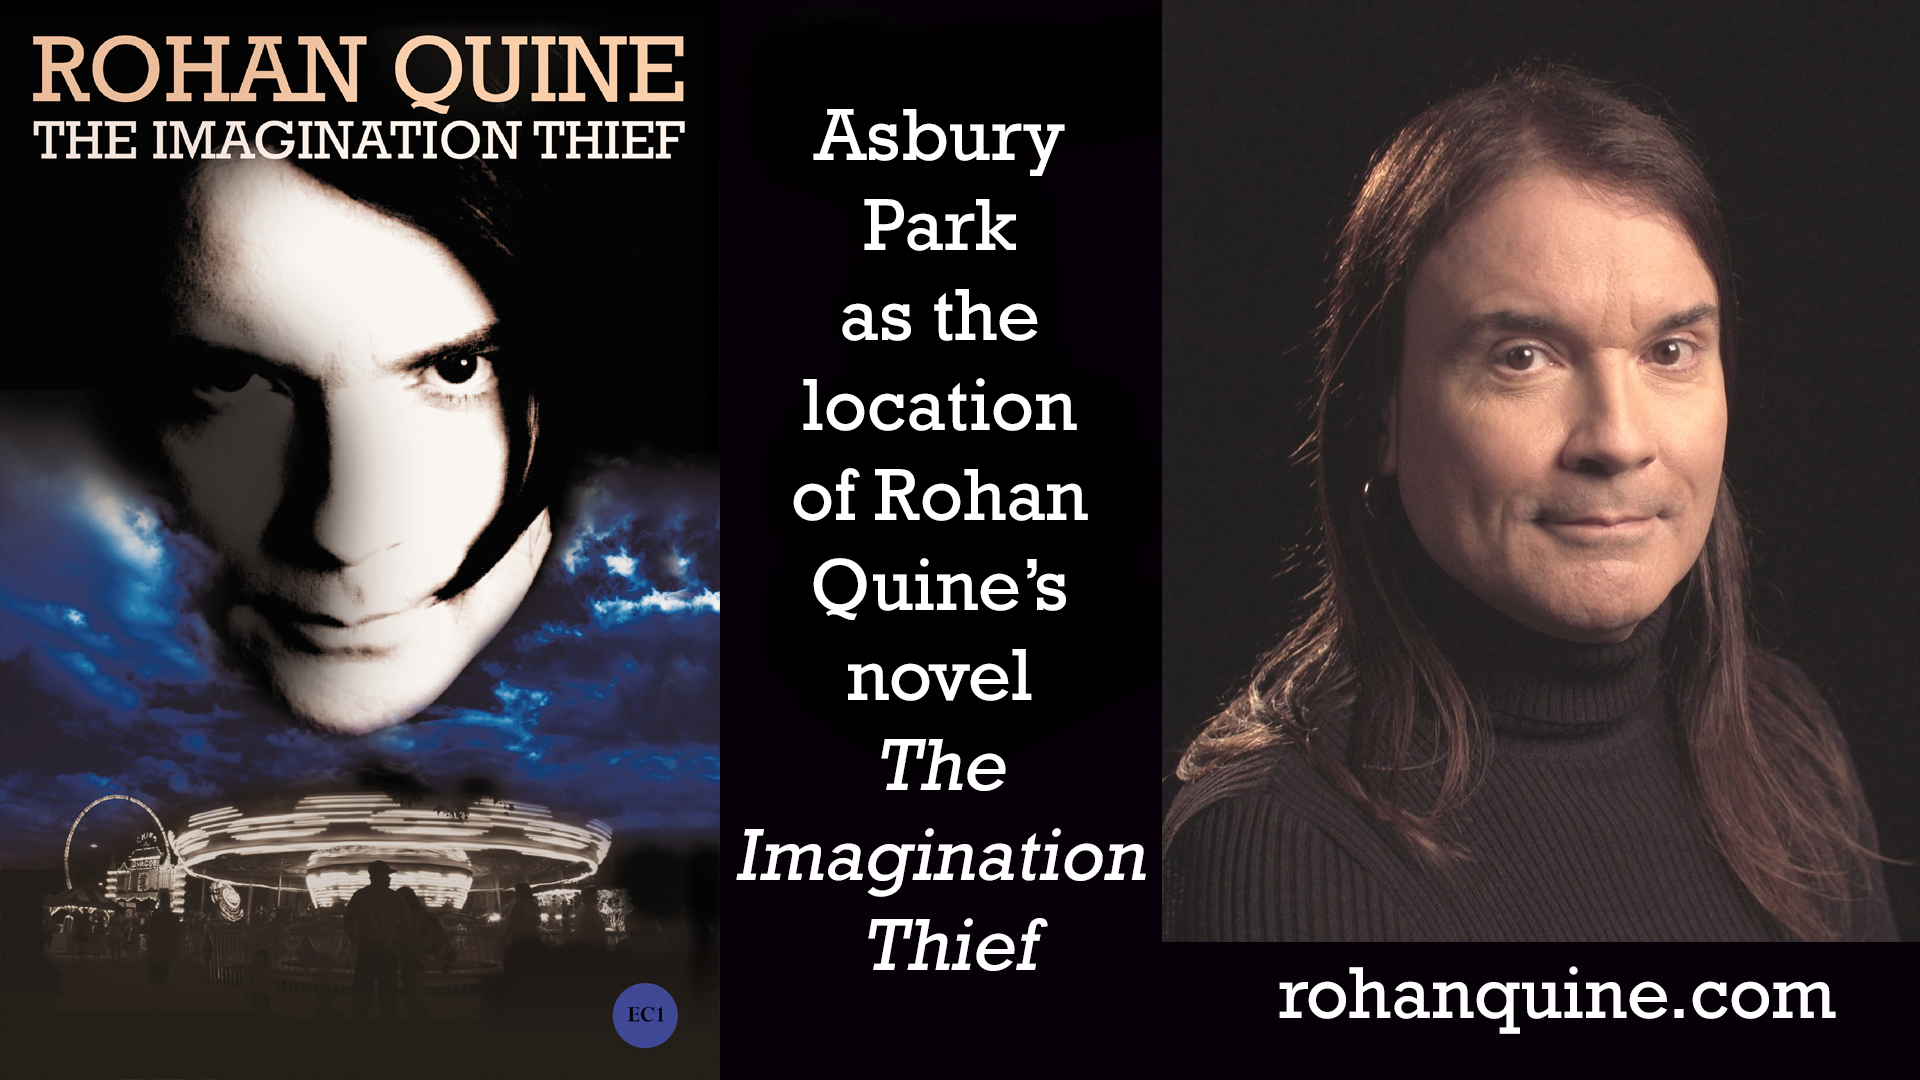 THE IMAGINATION THIEF (novel) by Rohan Quine - Asbury Park location